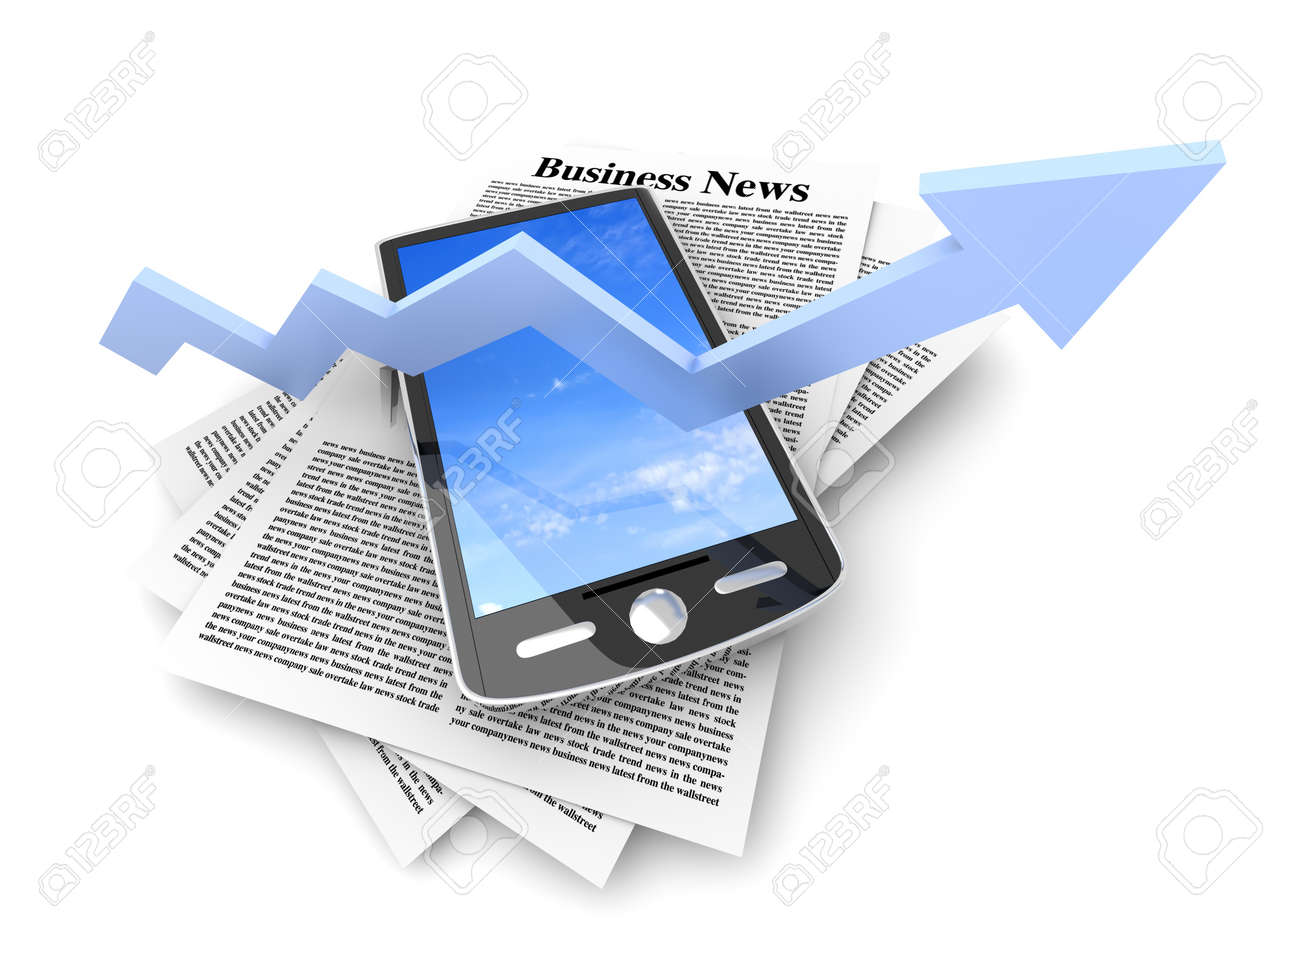 A smartphone in the latest business news  3d rendered Illustration  Isolated on white Stock Illustration - 15952712